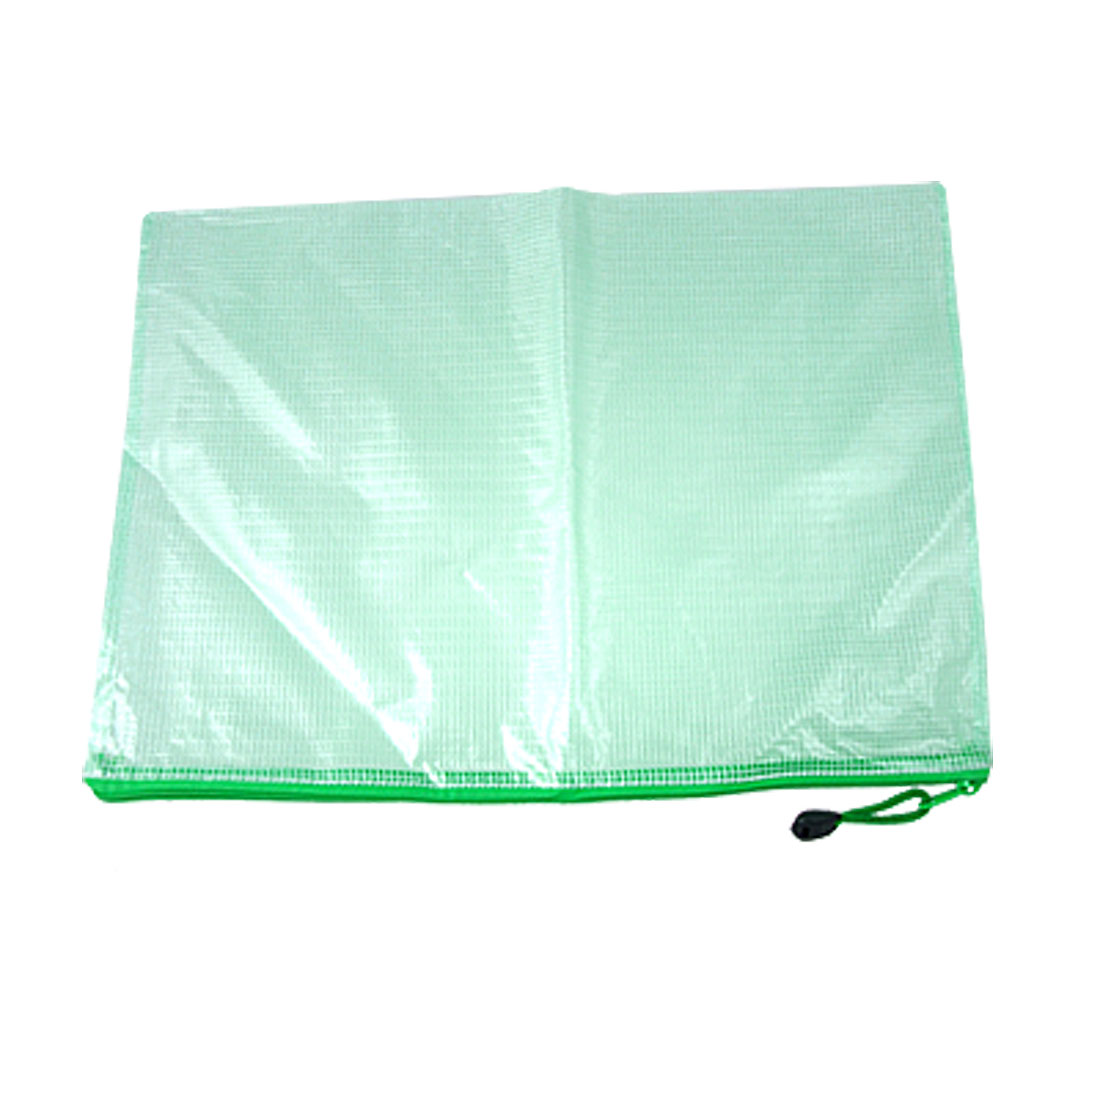 Soft Plastic Green Zipper Closure File Bag Holder